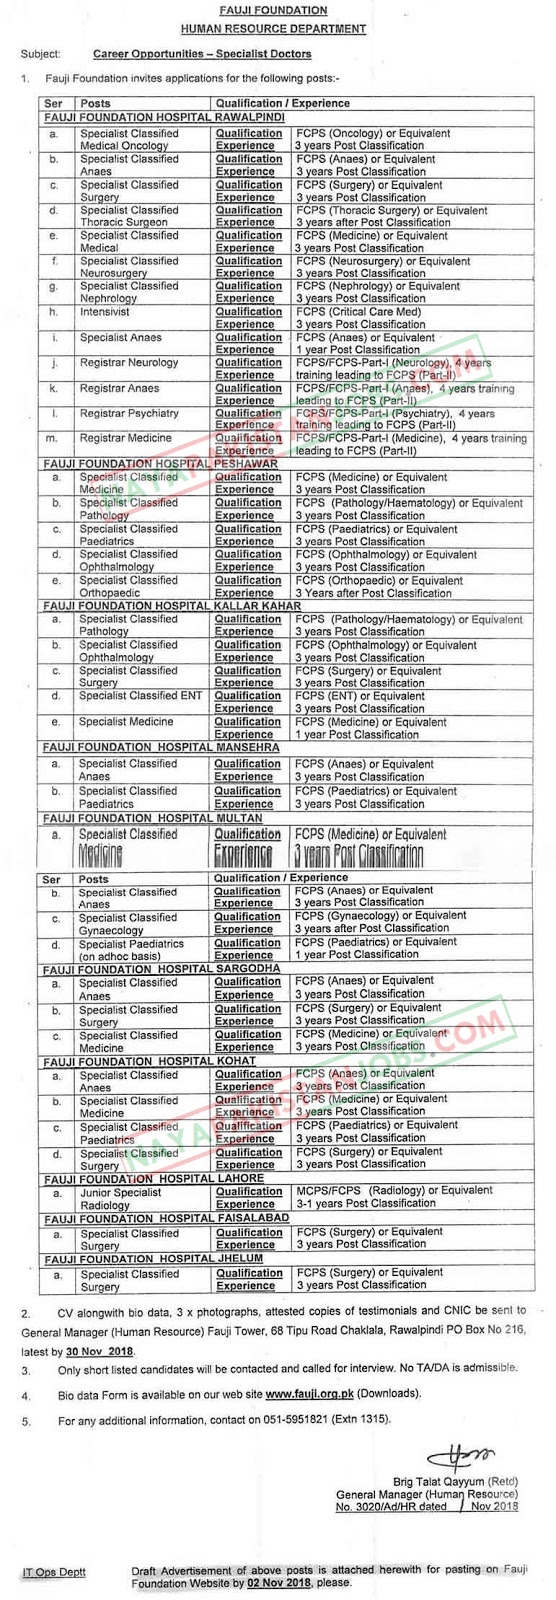 Latest Vacancies Announced in Fauji Foundation Human Resource Department 6 November 2018 - Naya Pakistan